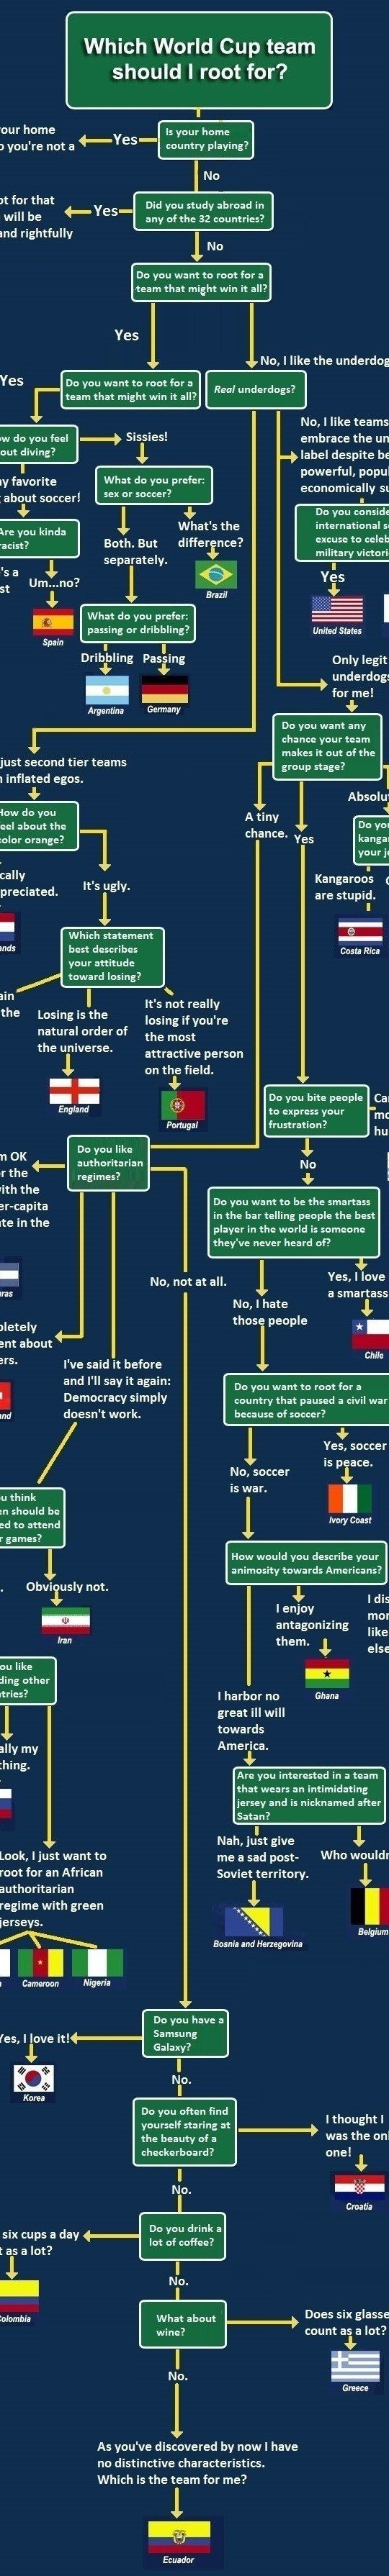 How to choose a world cup winner